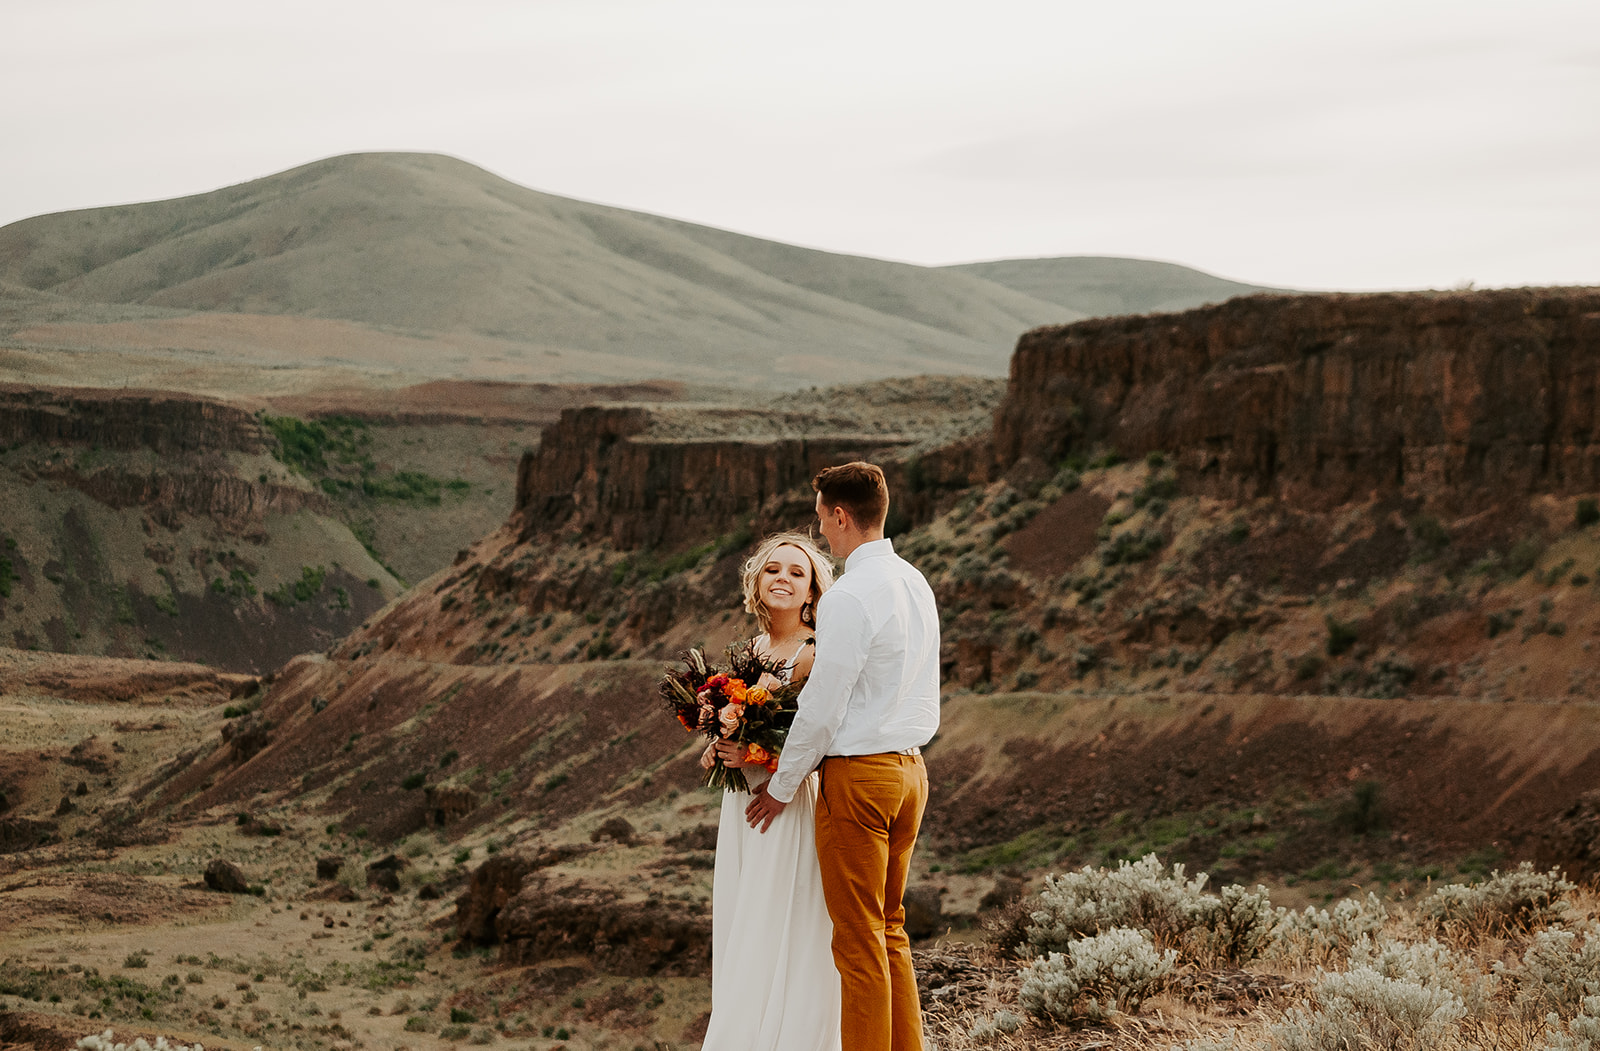 elopement spokane wedding dress essence of Australia